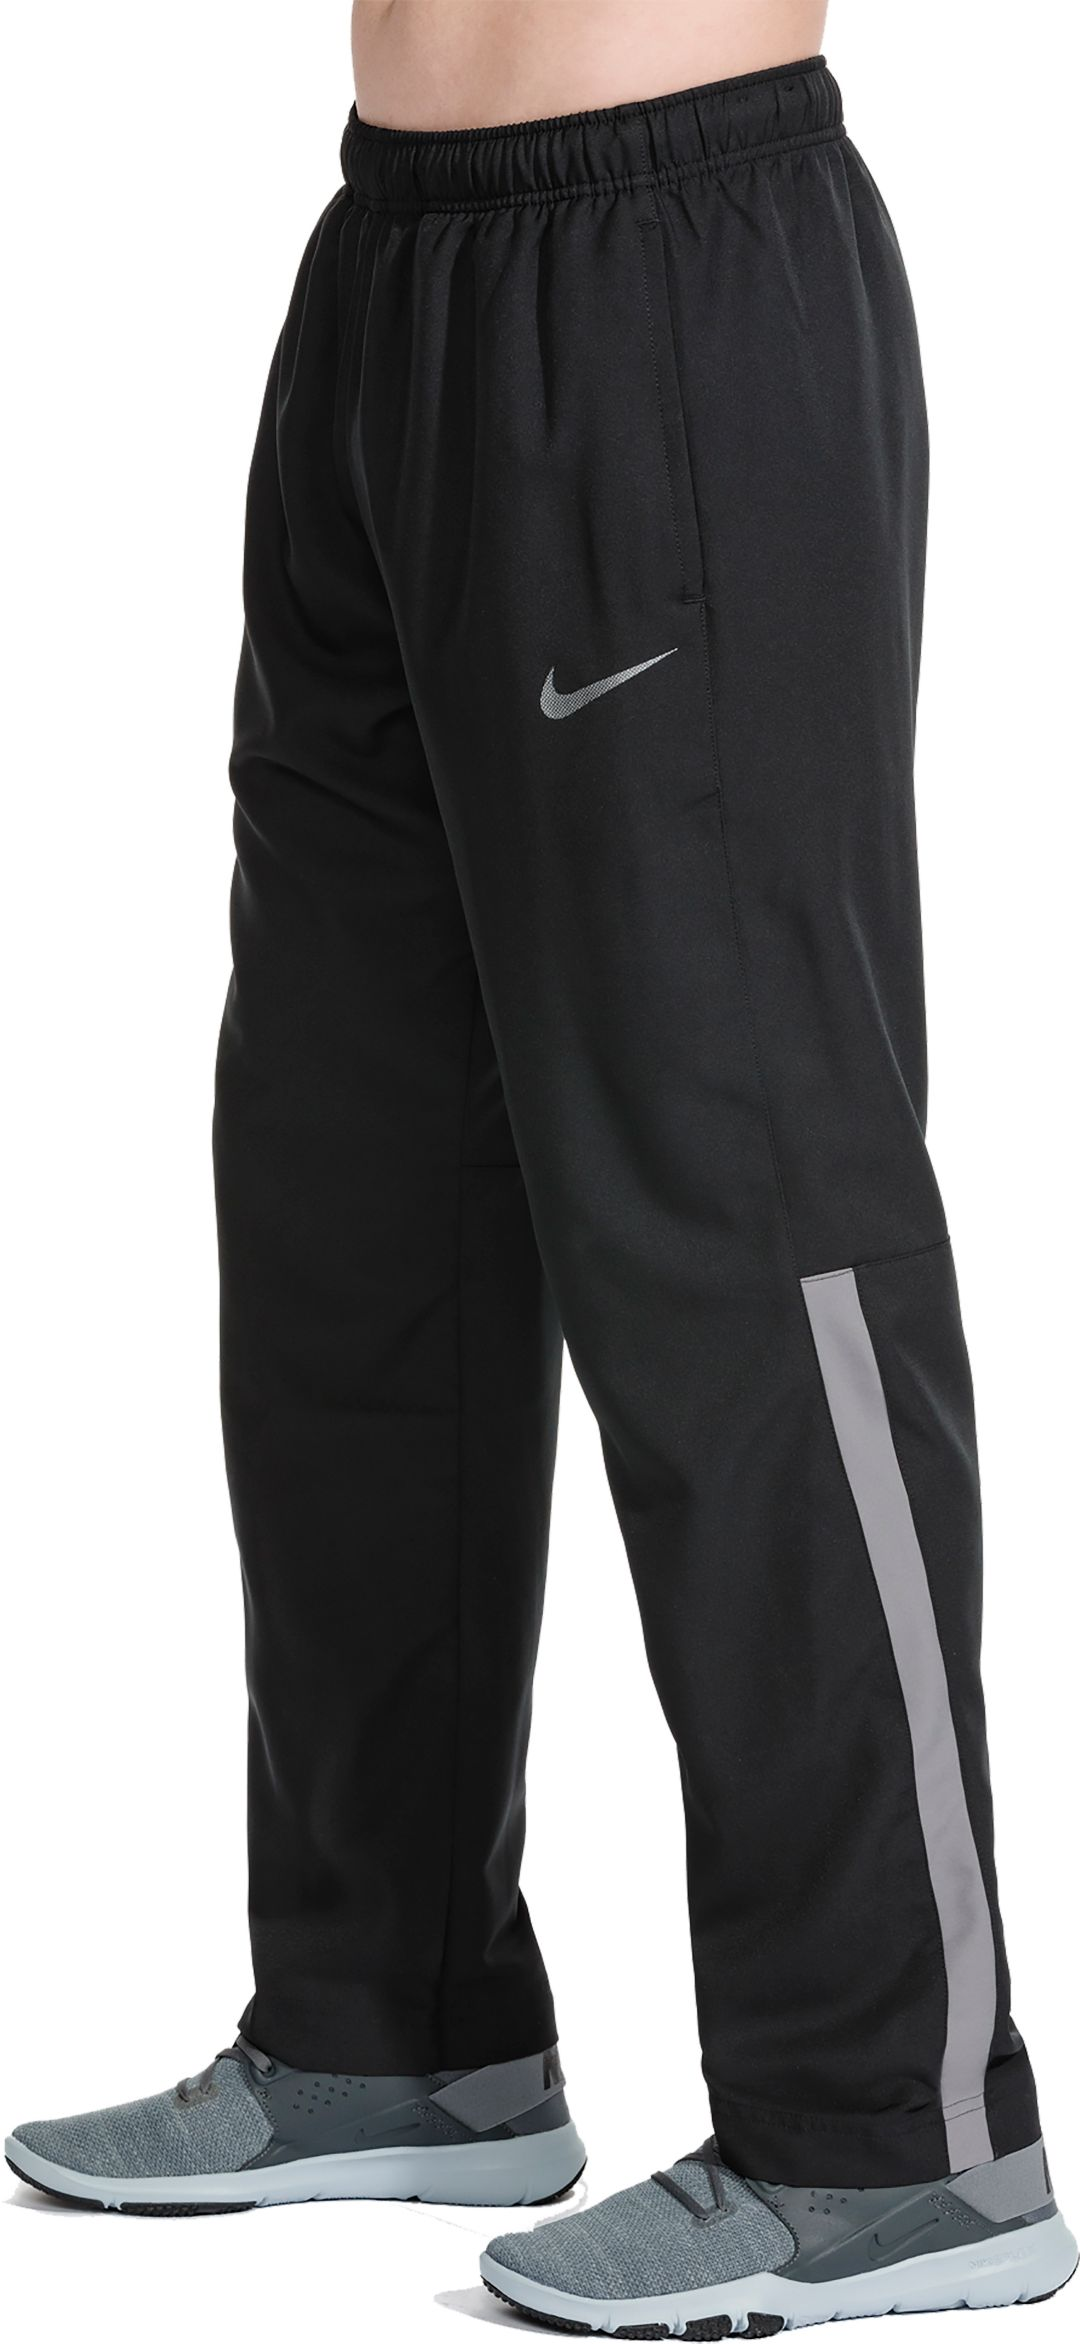 c0bd492a2 Nike Men's Dry Woven Team Training Pants | DICK'S Sporting Goods